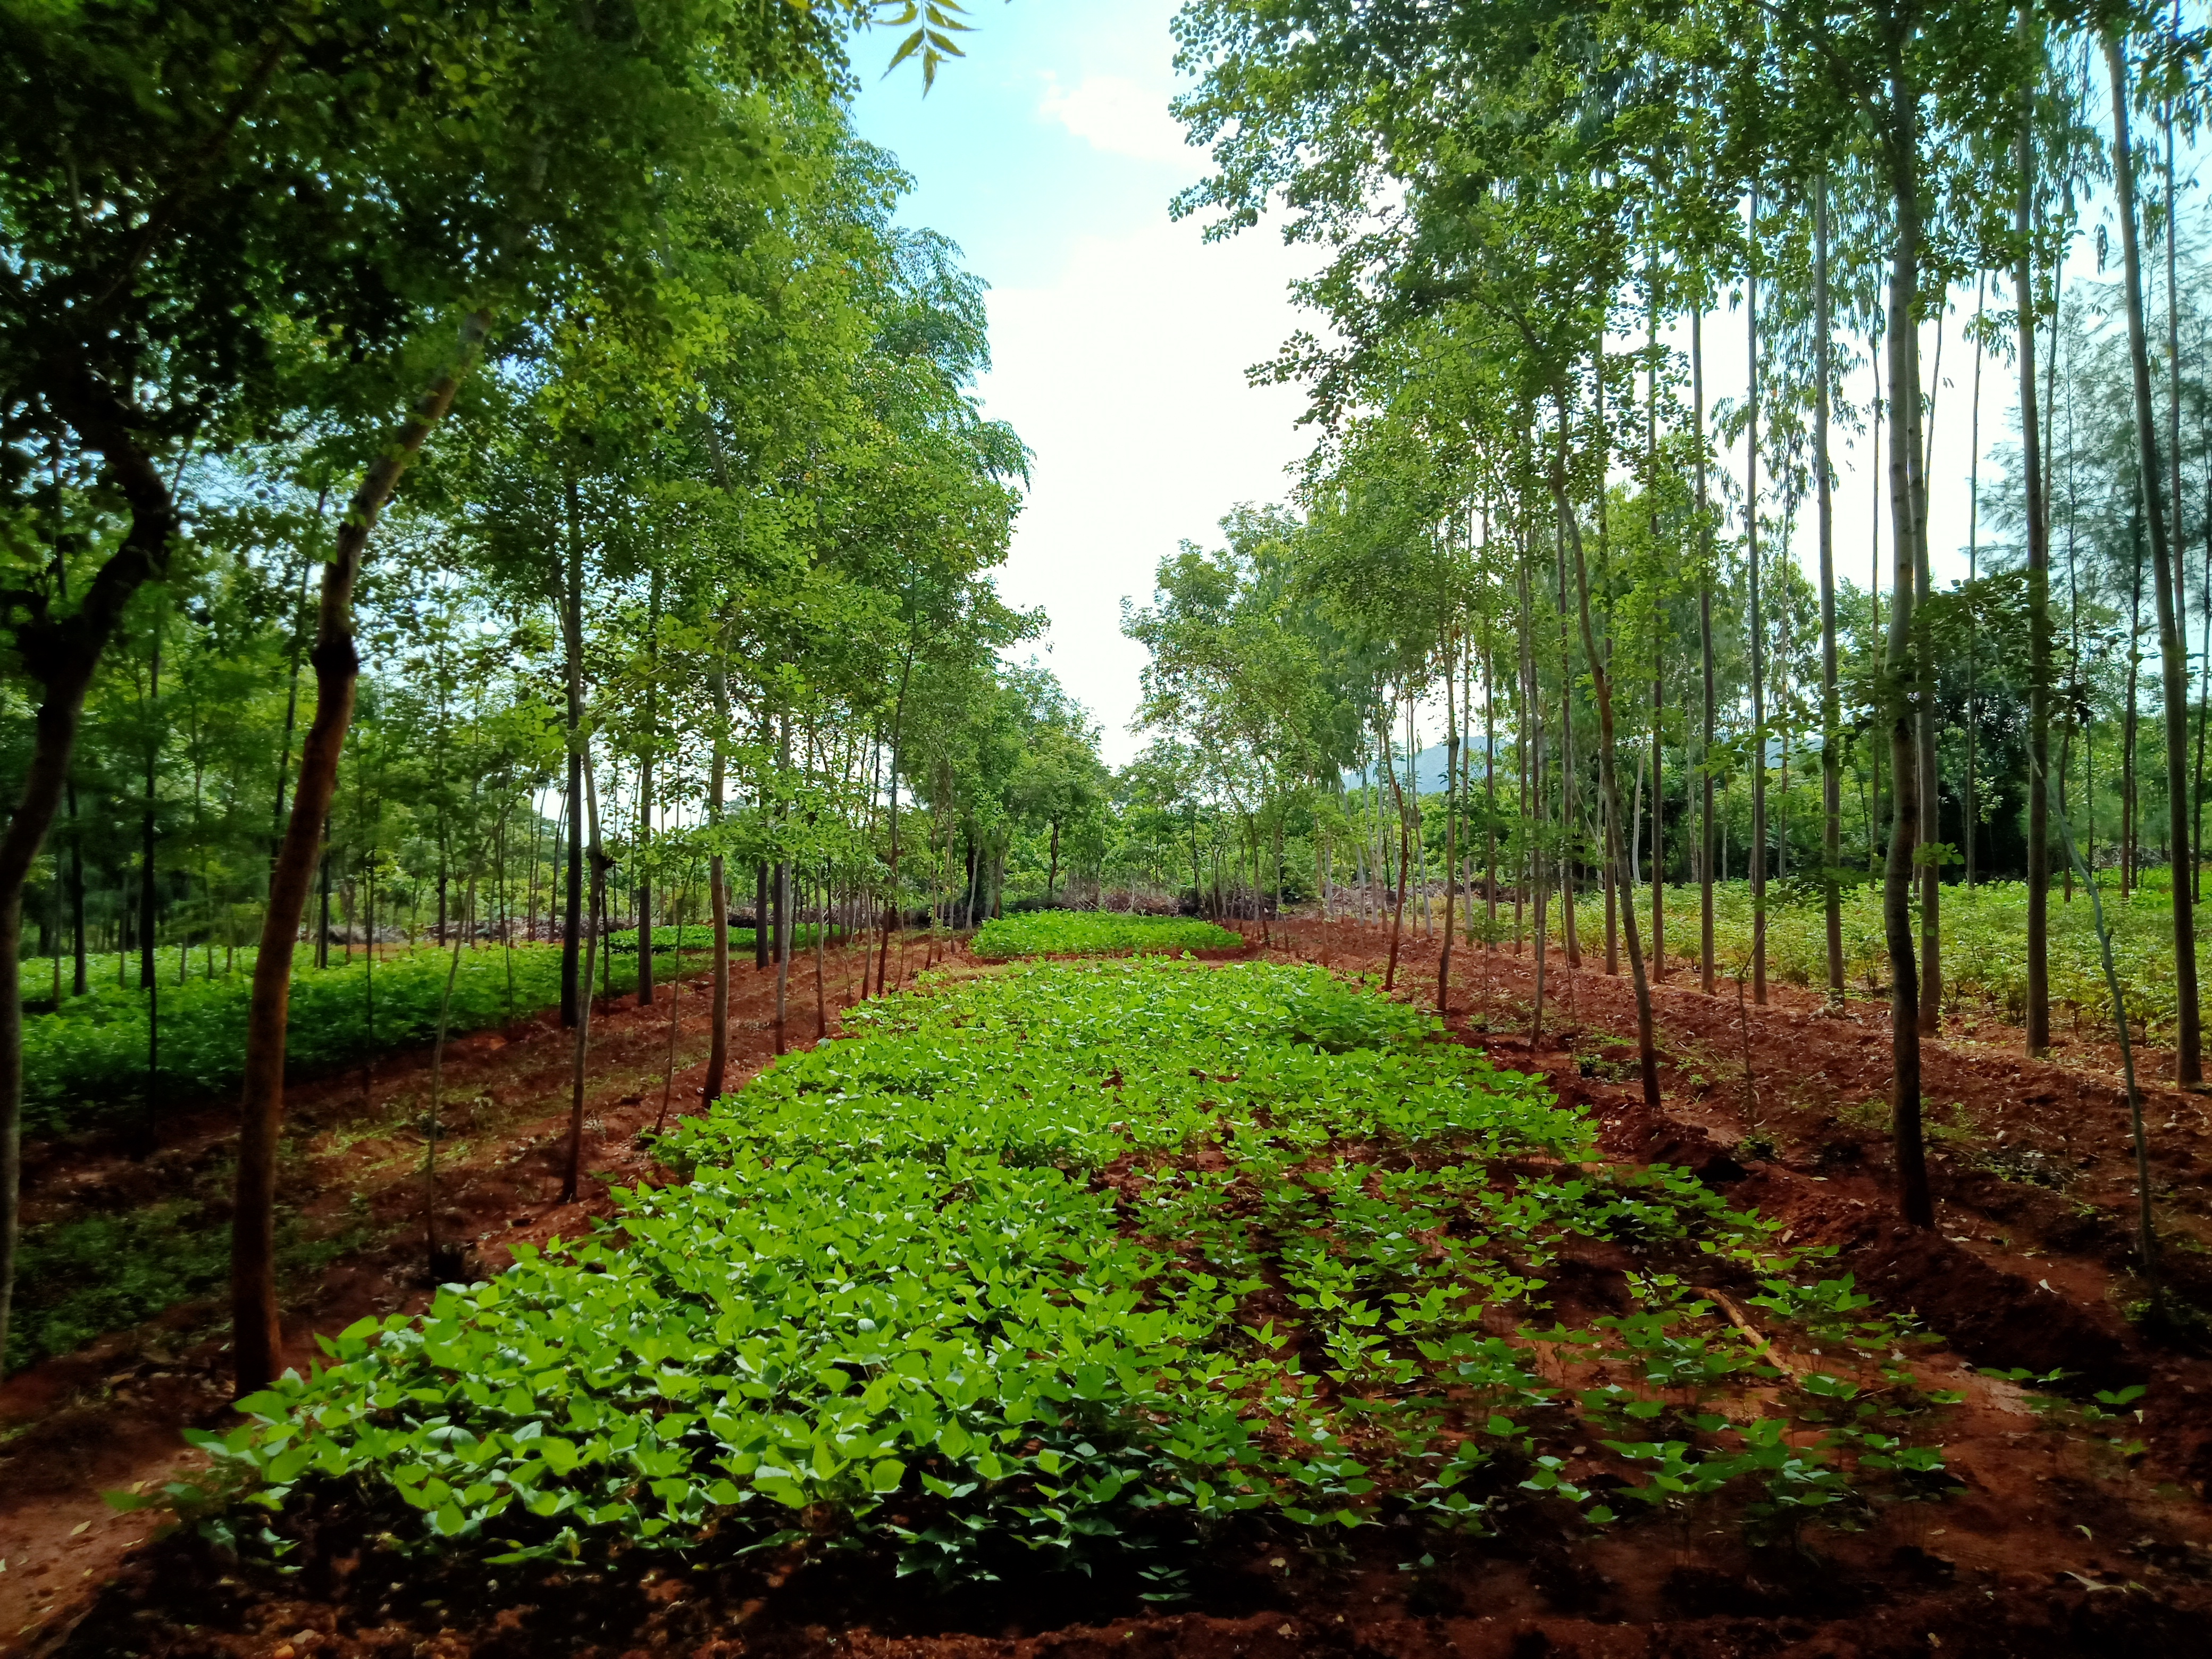 Agrisilviculture system- Dalbergia sissoo +Blackgram - Spacing - 6 x 1.5 m, Age - 4 years